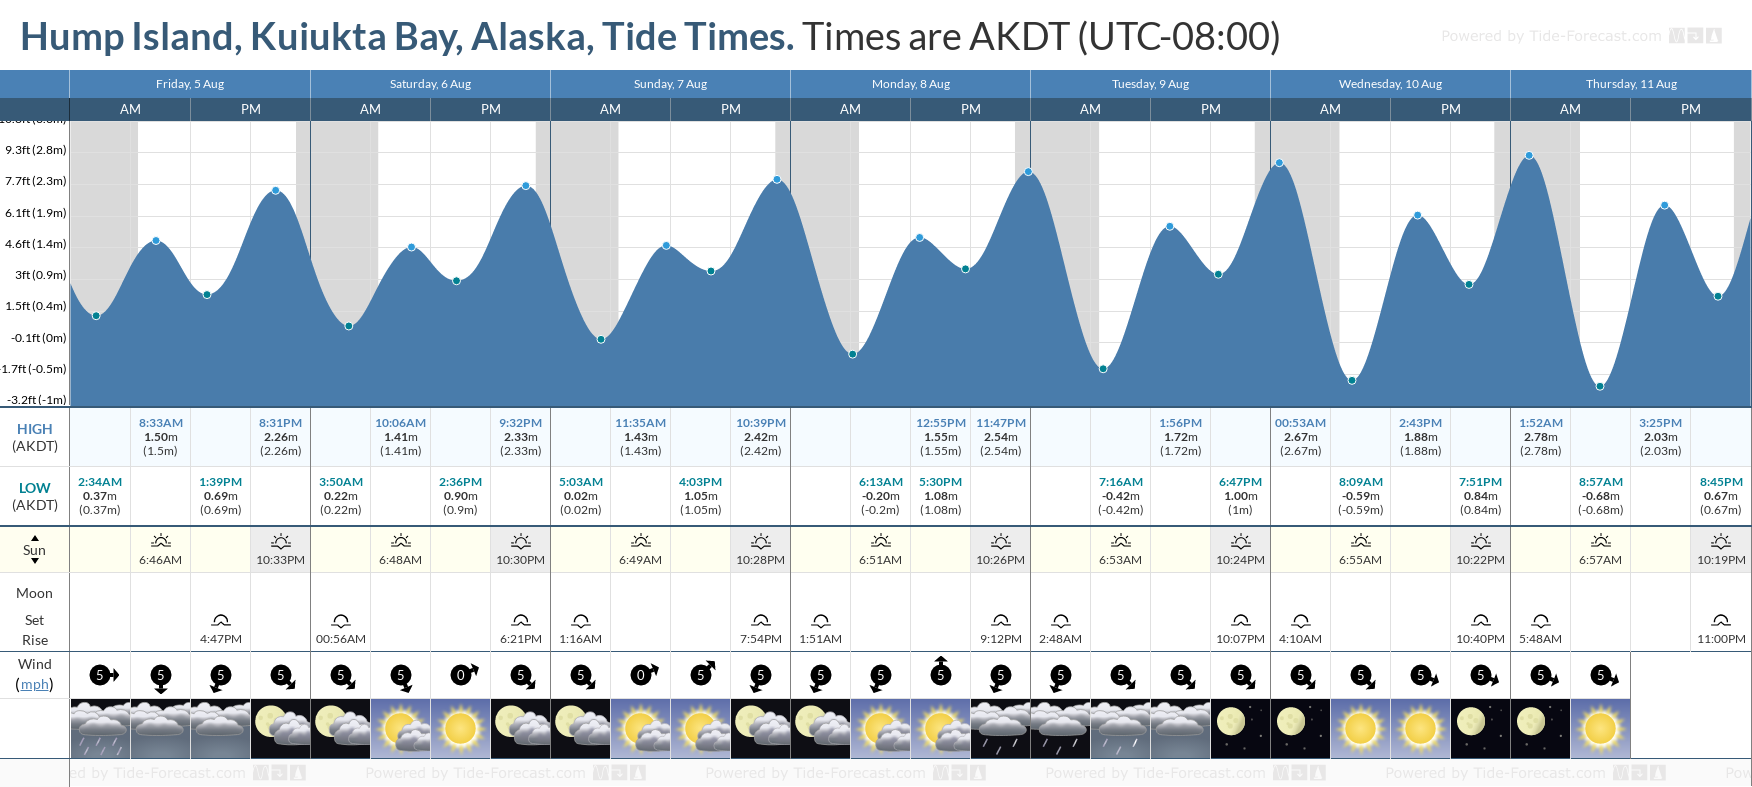 Hump Island, Kuiukta Bay, Alaska Tide Chart including high and low tide tide times for the next 7 days